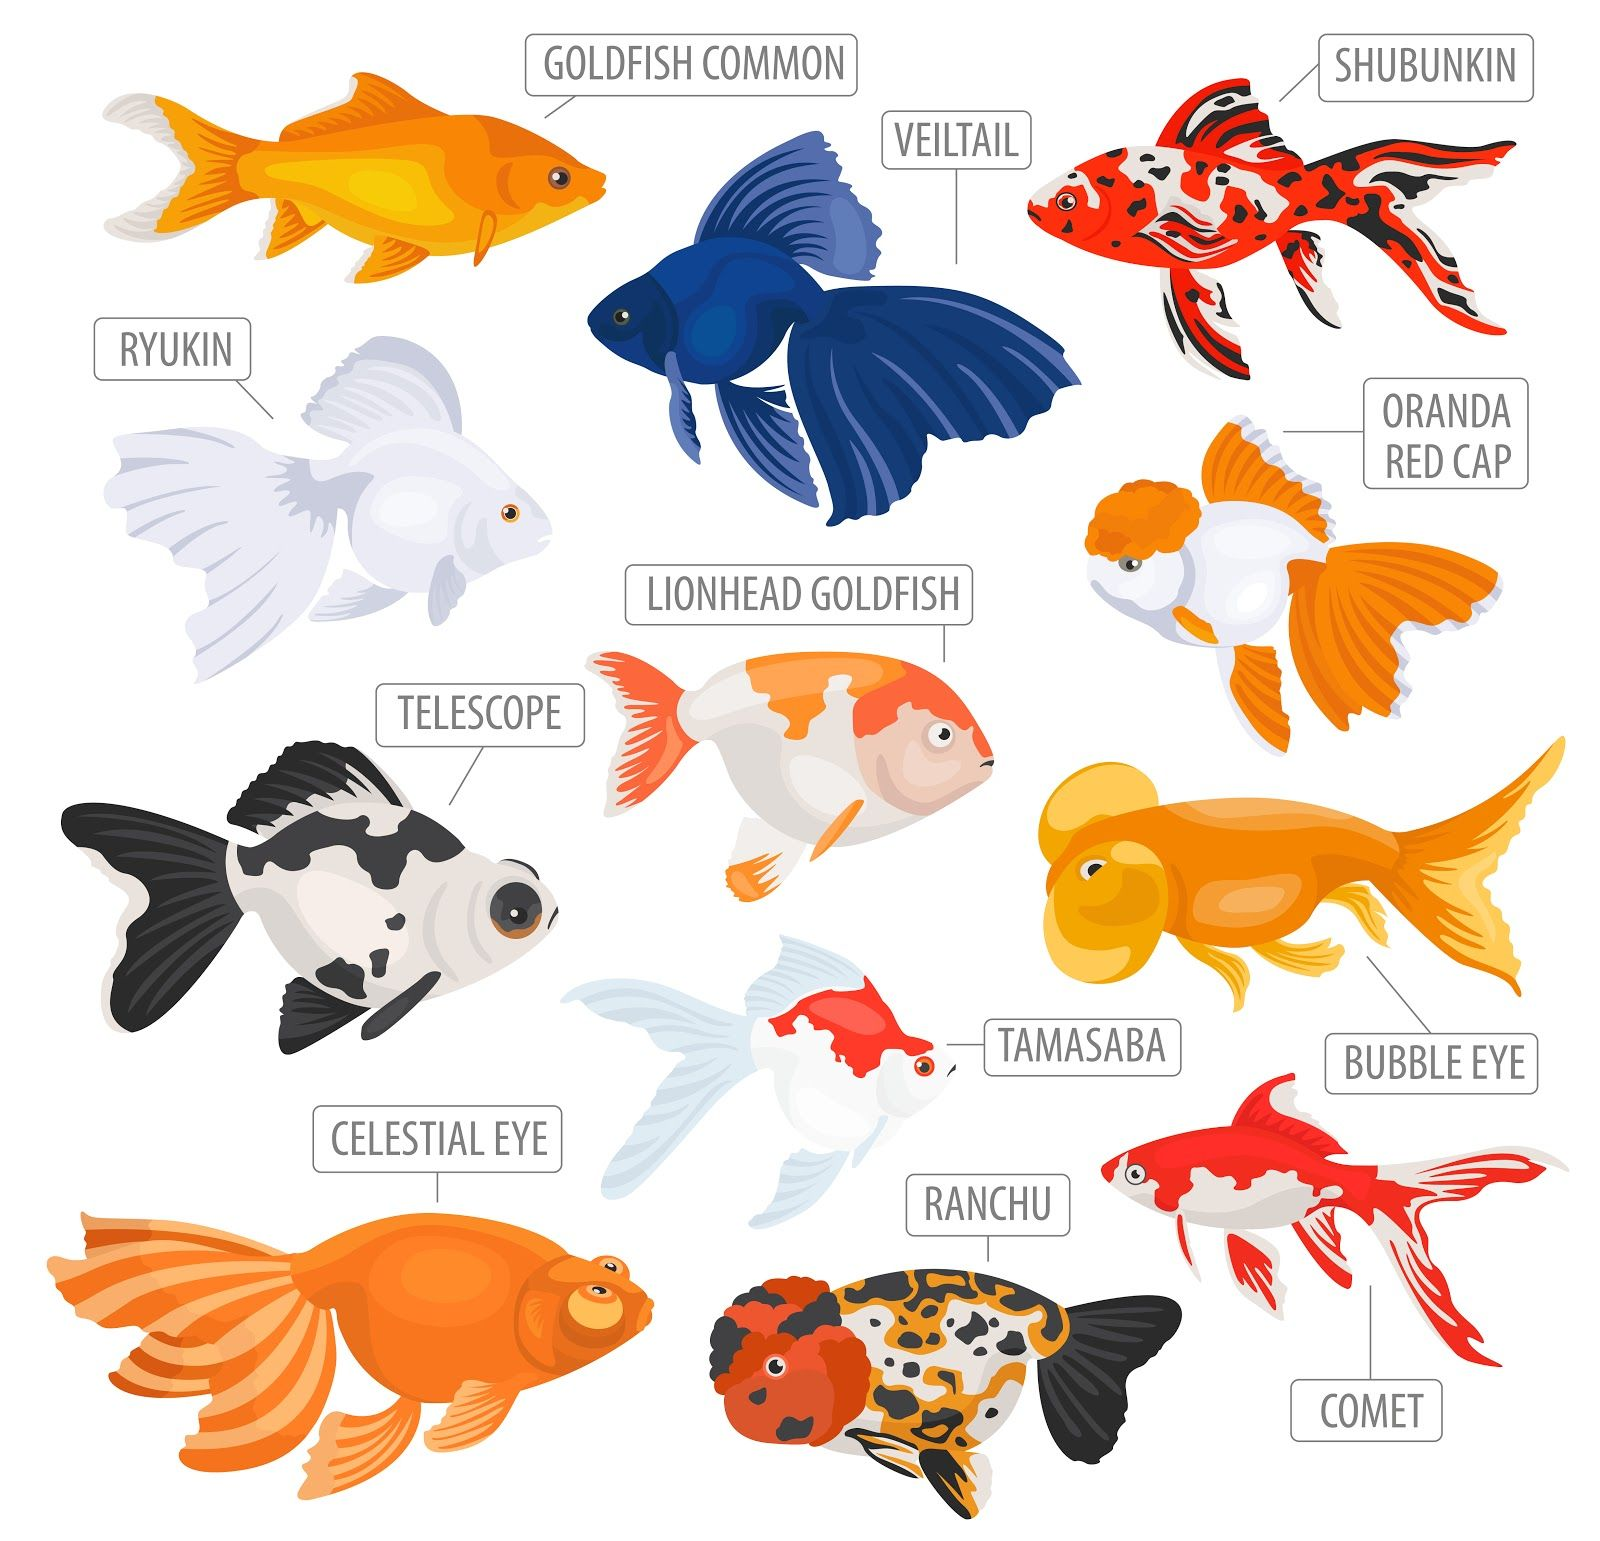 Poisson Rouge Bassin Extérieur goldfish body types - the different goldfish body types